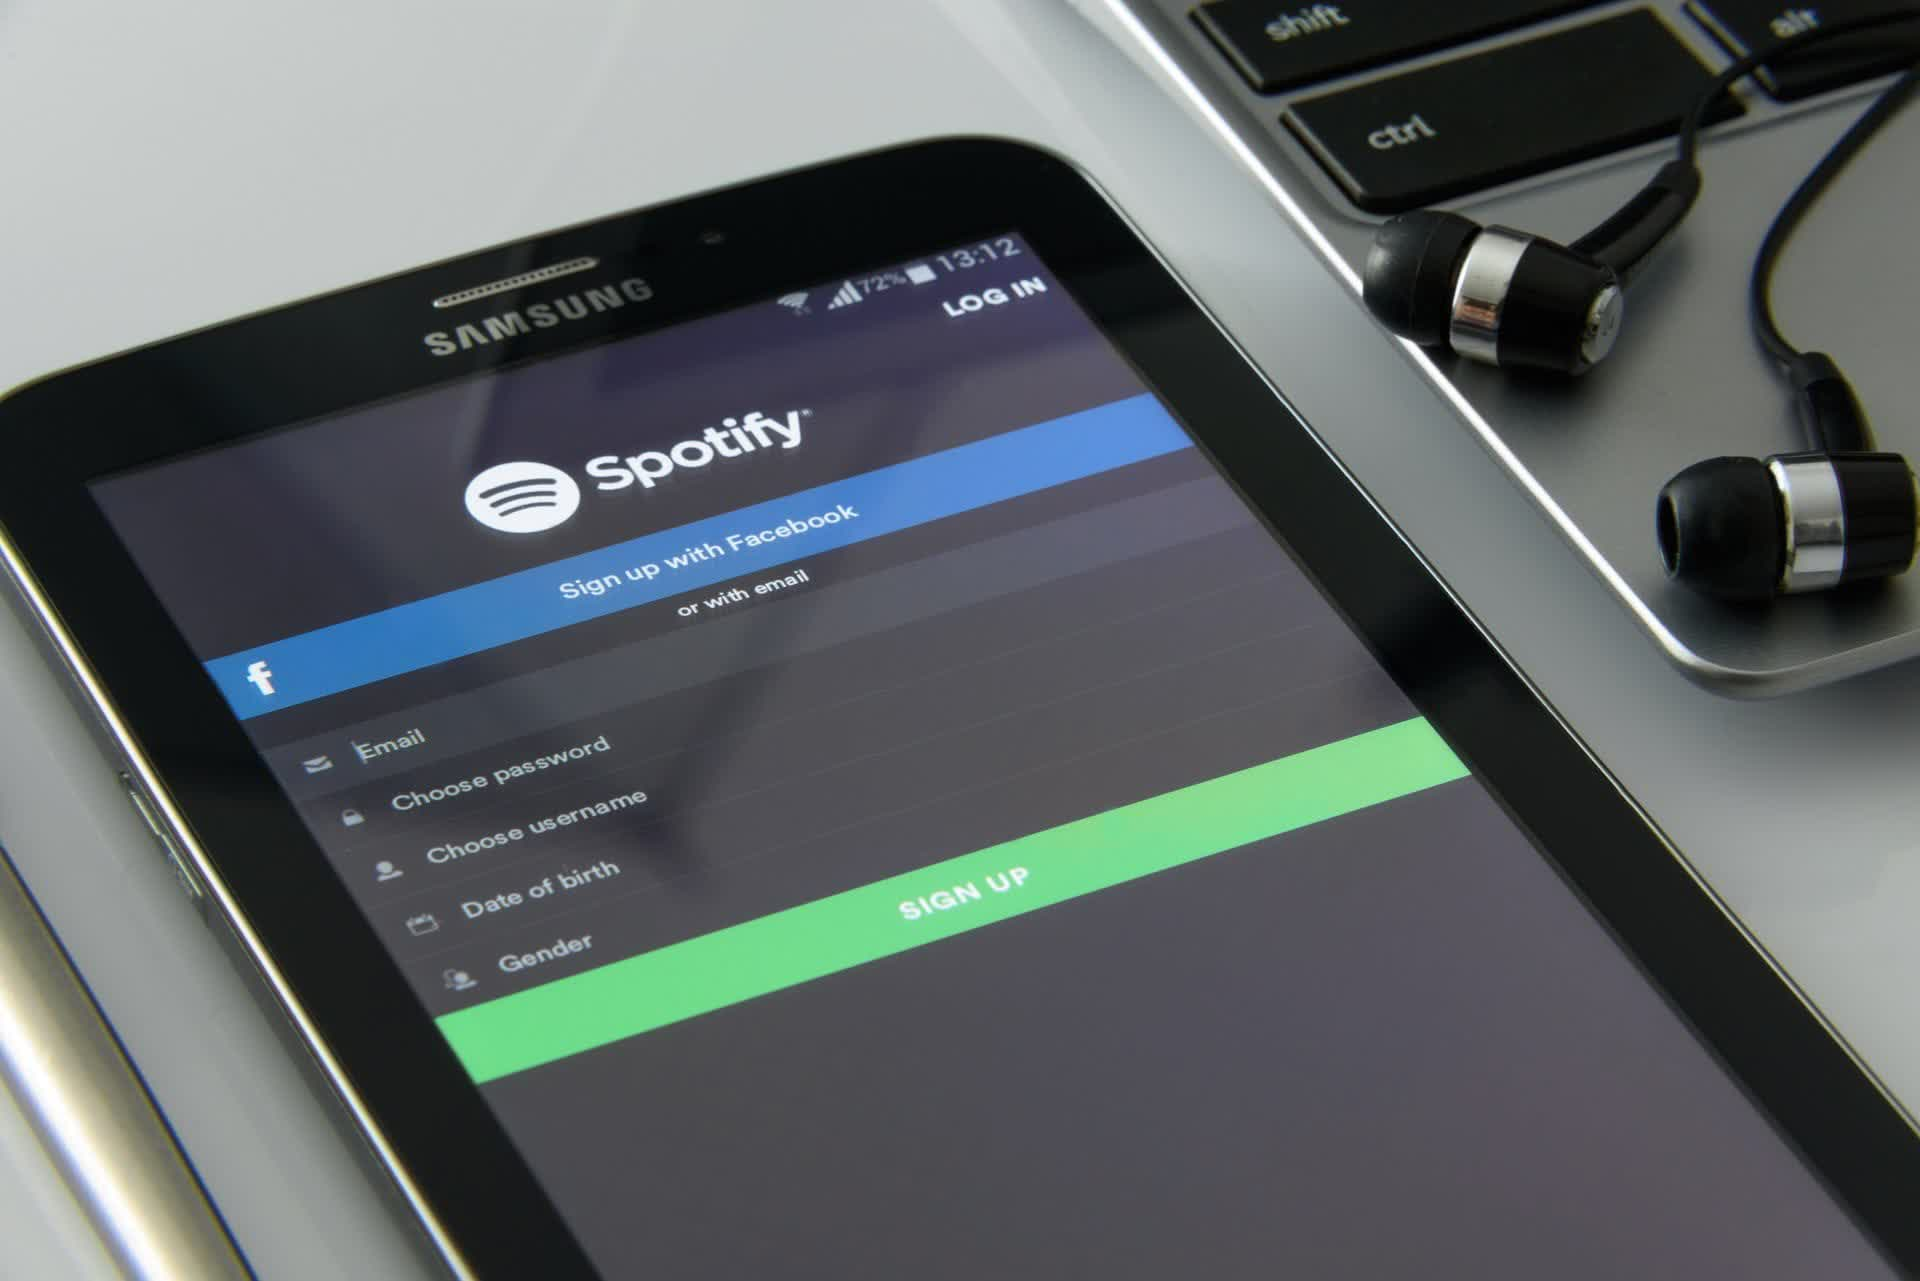 Spotify rolls out Blend playlists that combines the listening tastes of two users